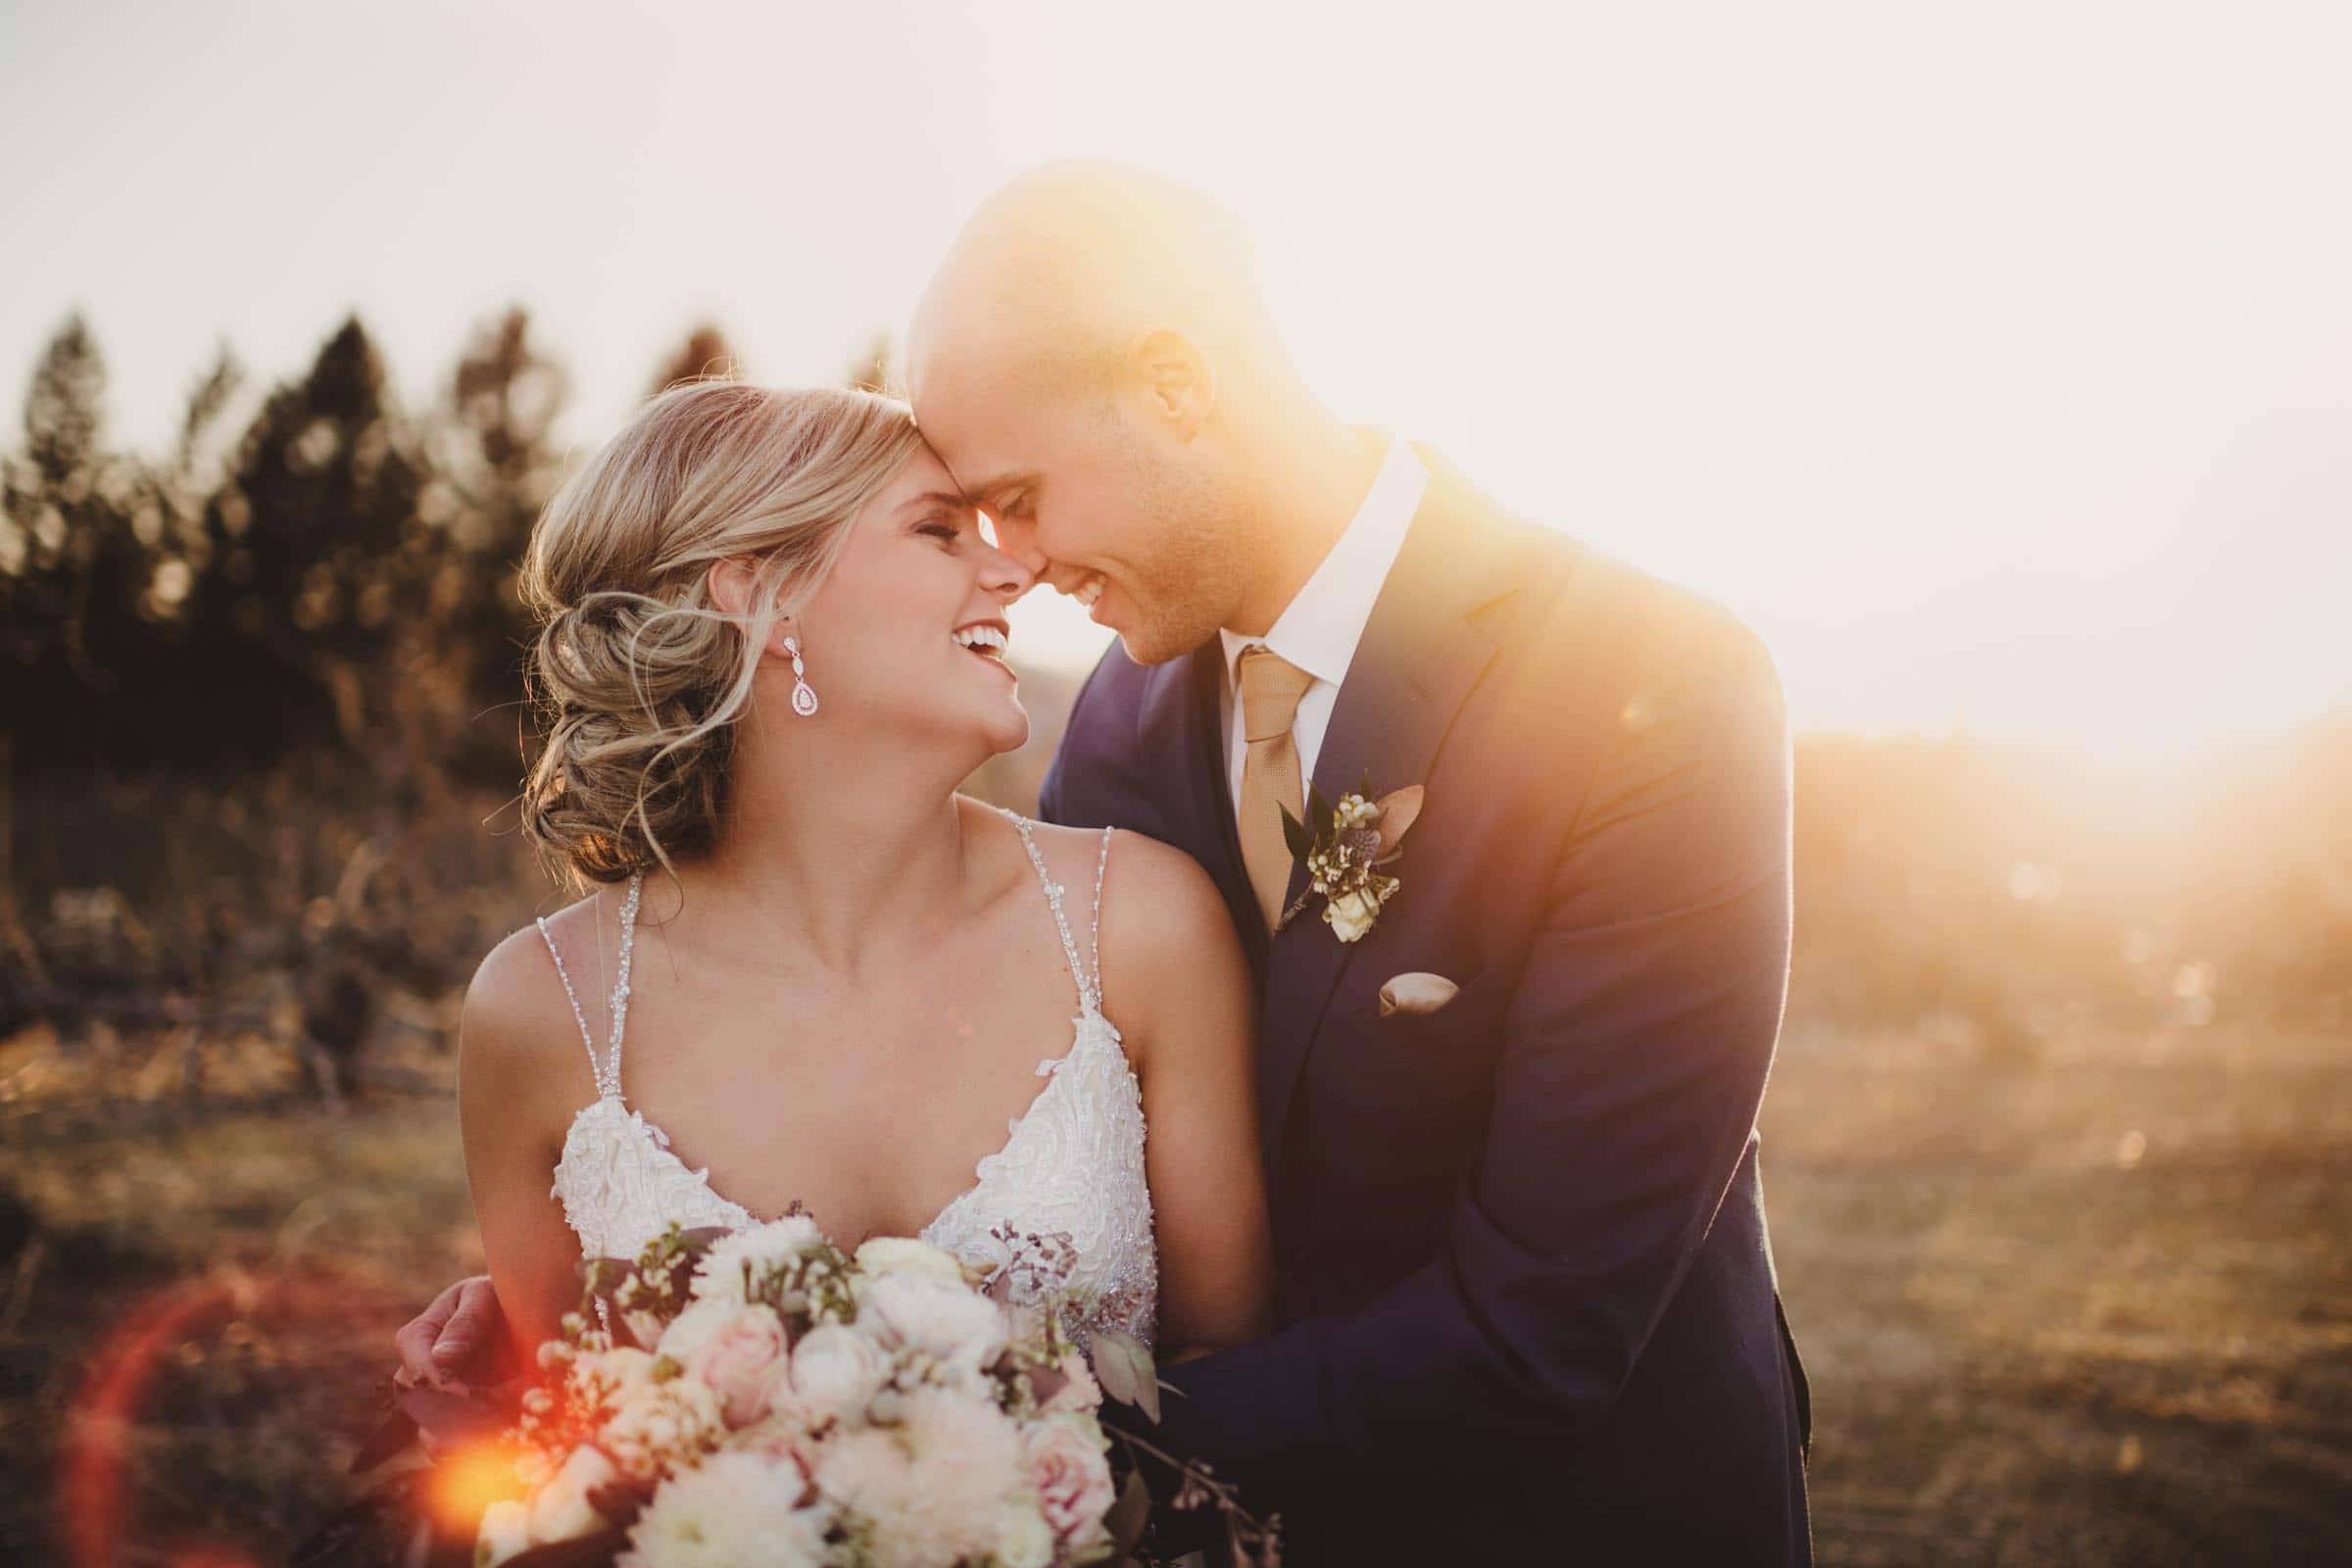 Bride Groom Touching Foreheads Smiling